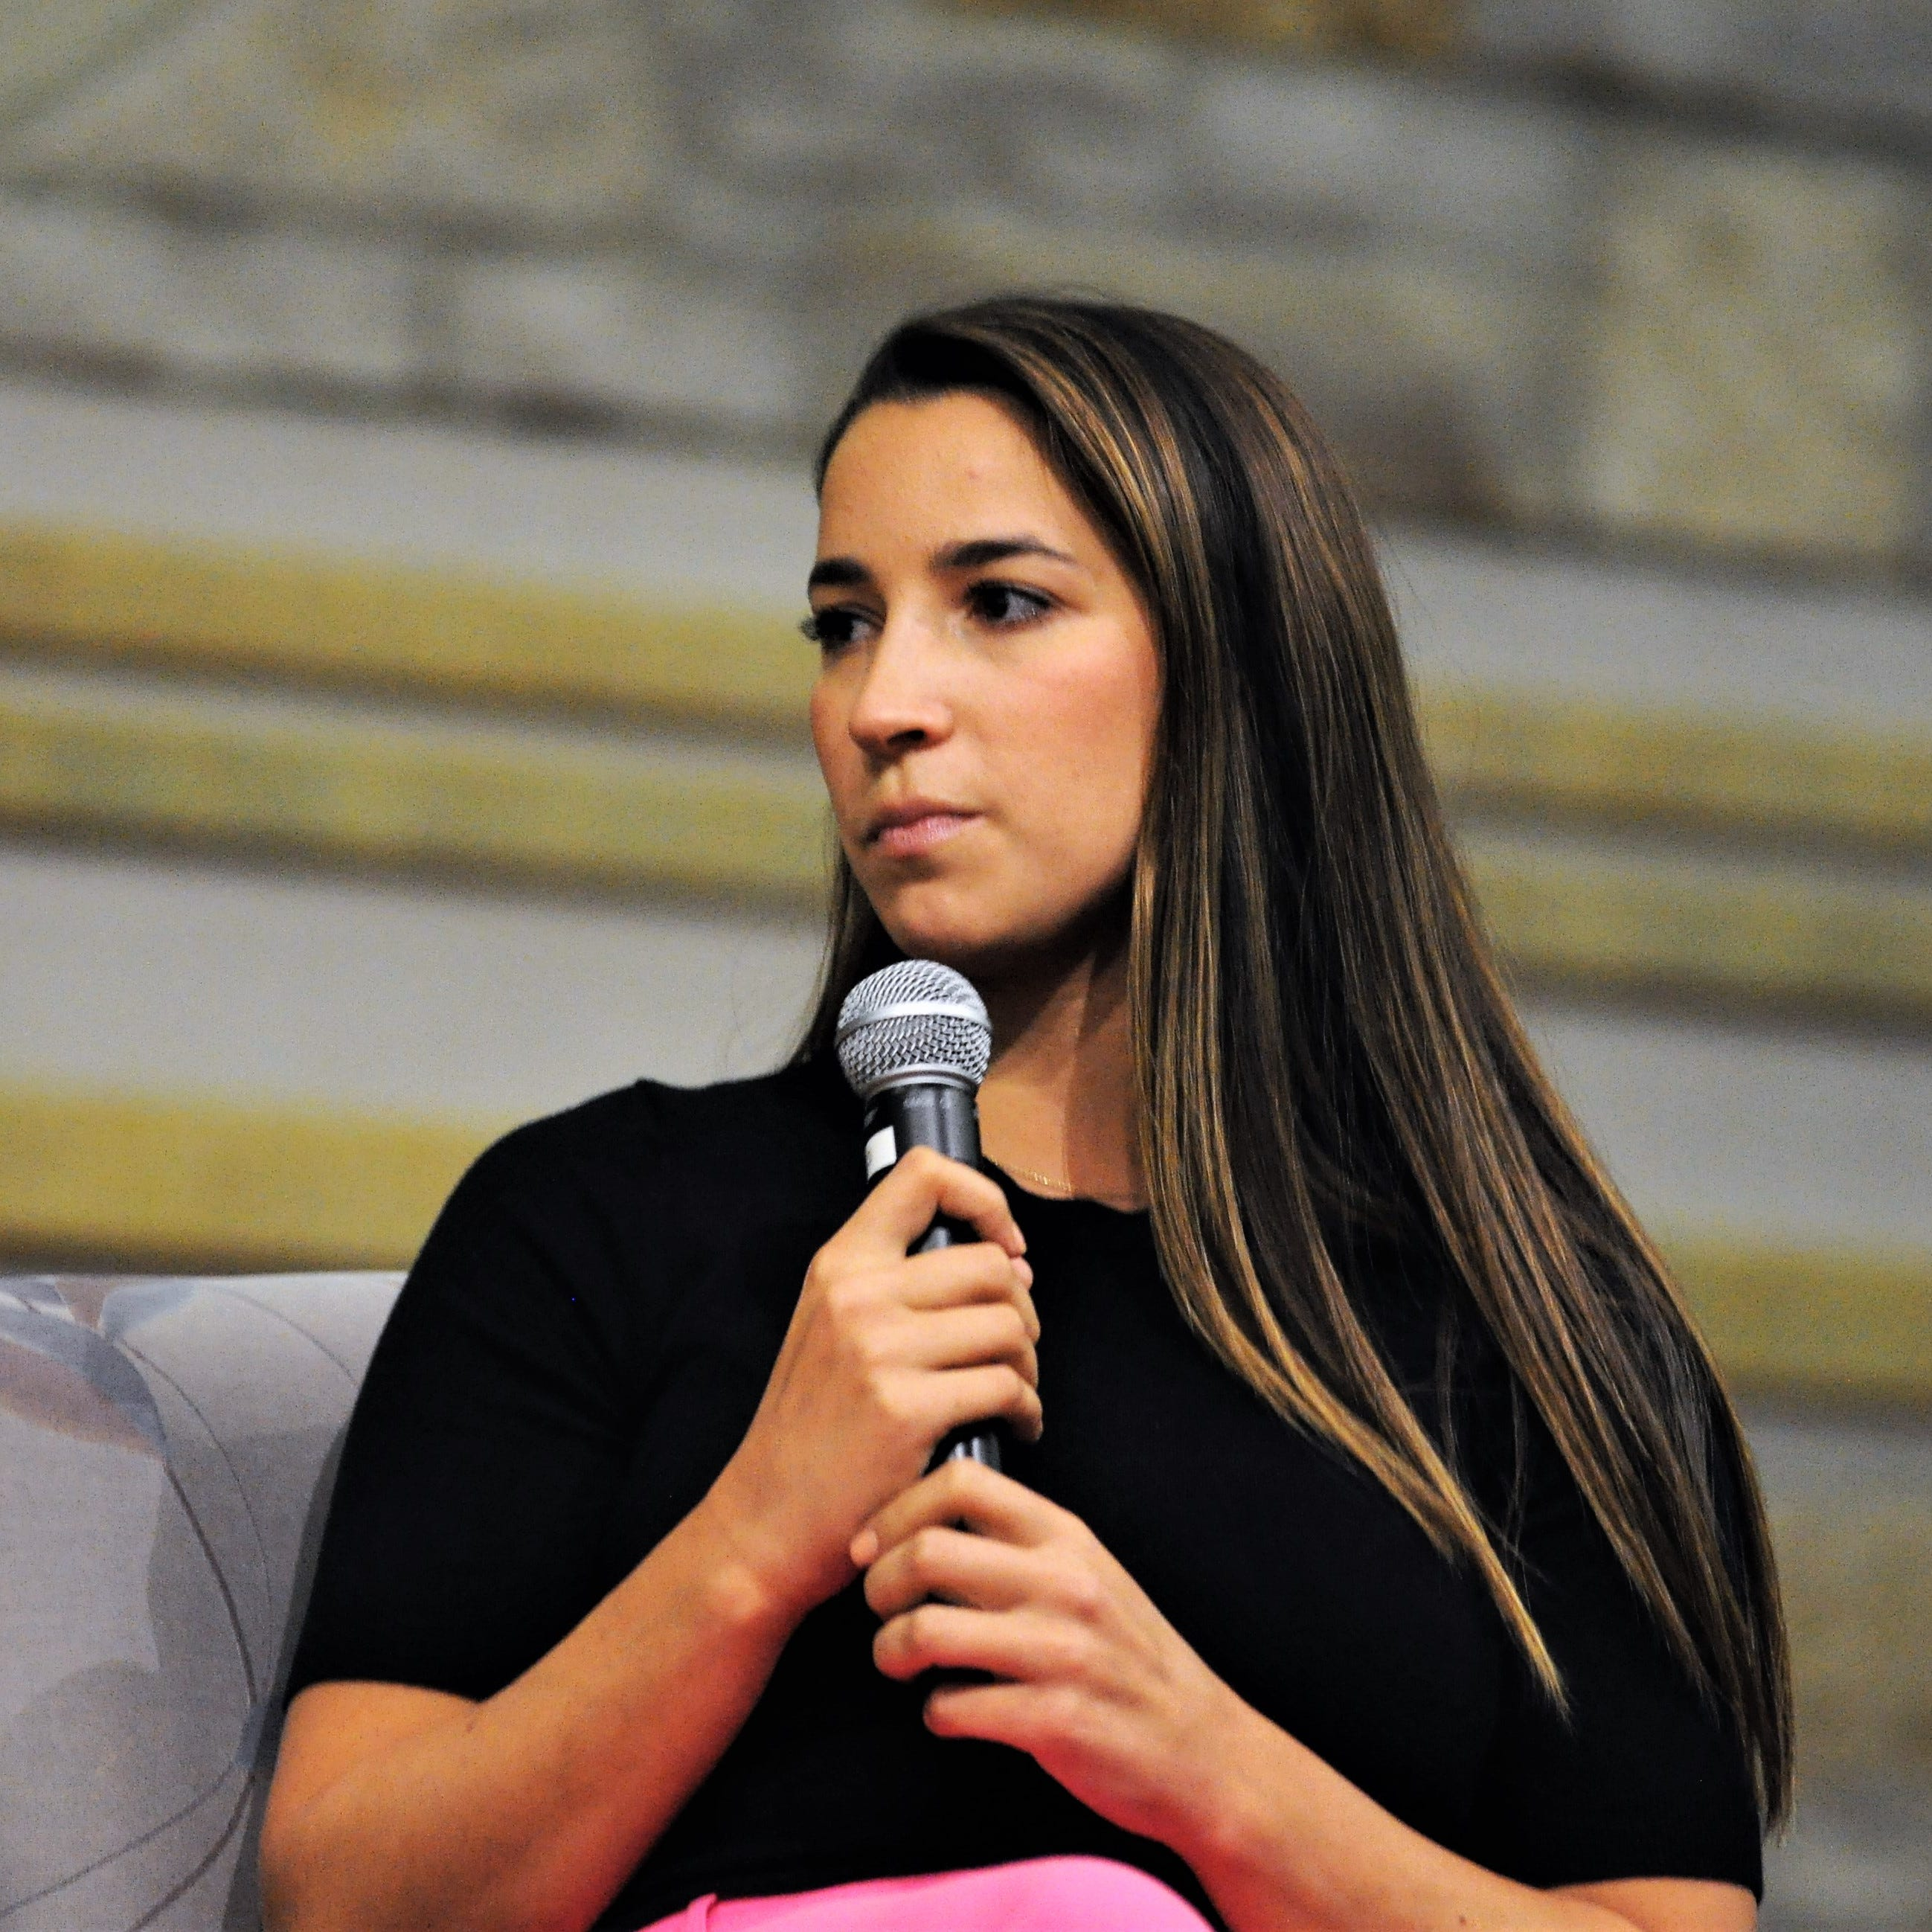 Aly Raisman tells Fox Point crowd that changes to USA Gymnastics shouldn't stop with Nassar sex-assault sentence